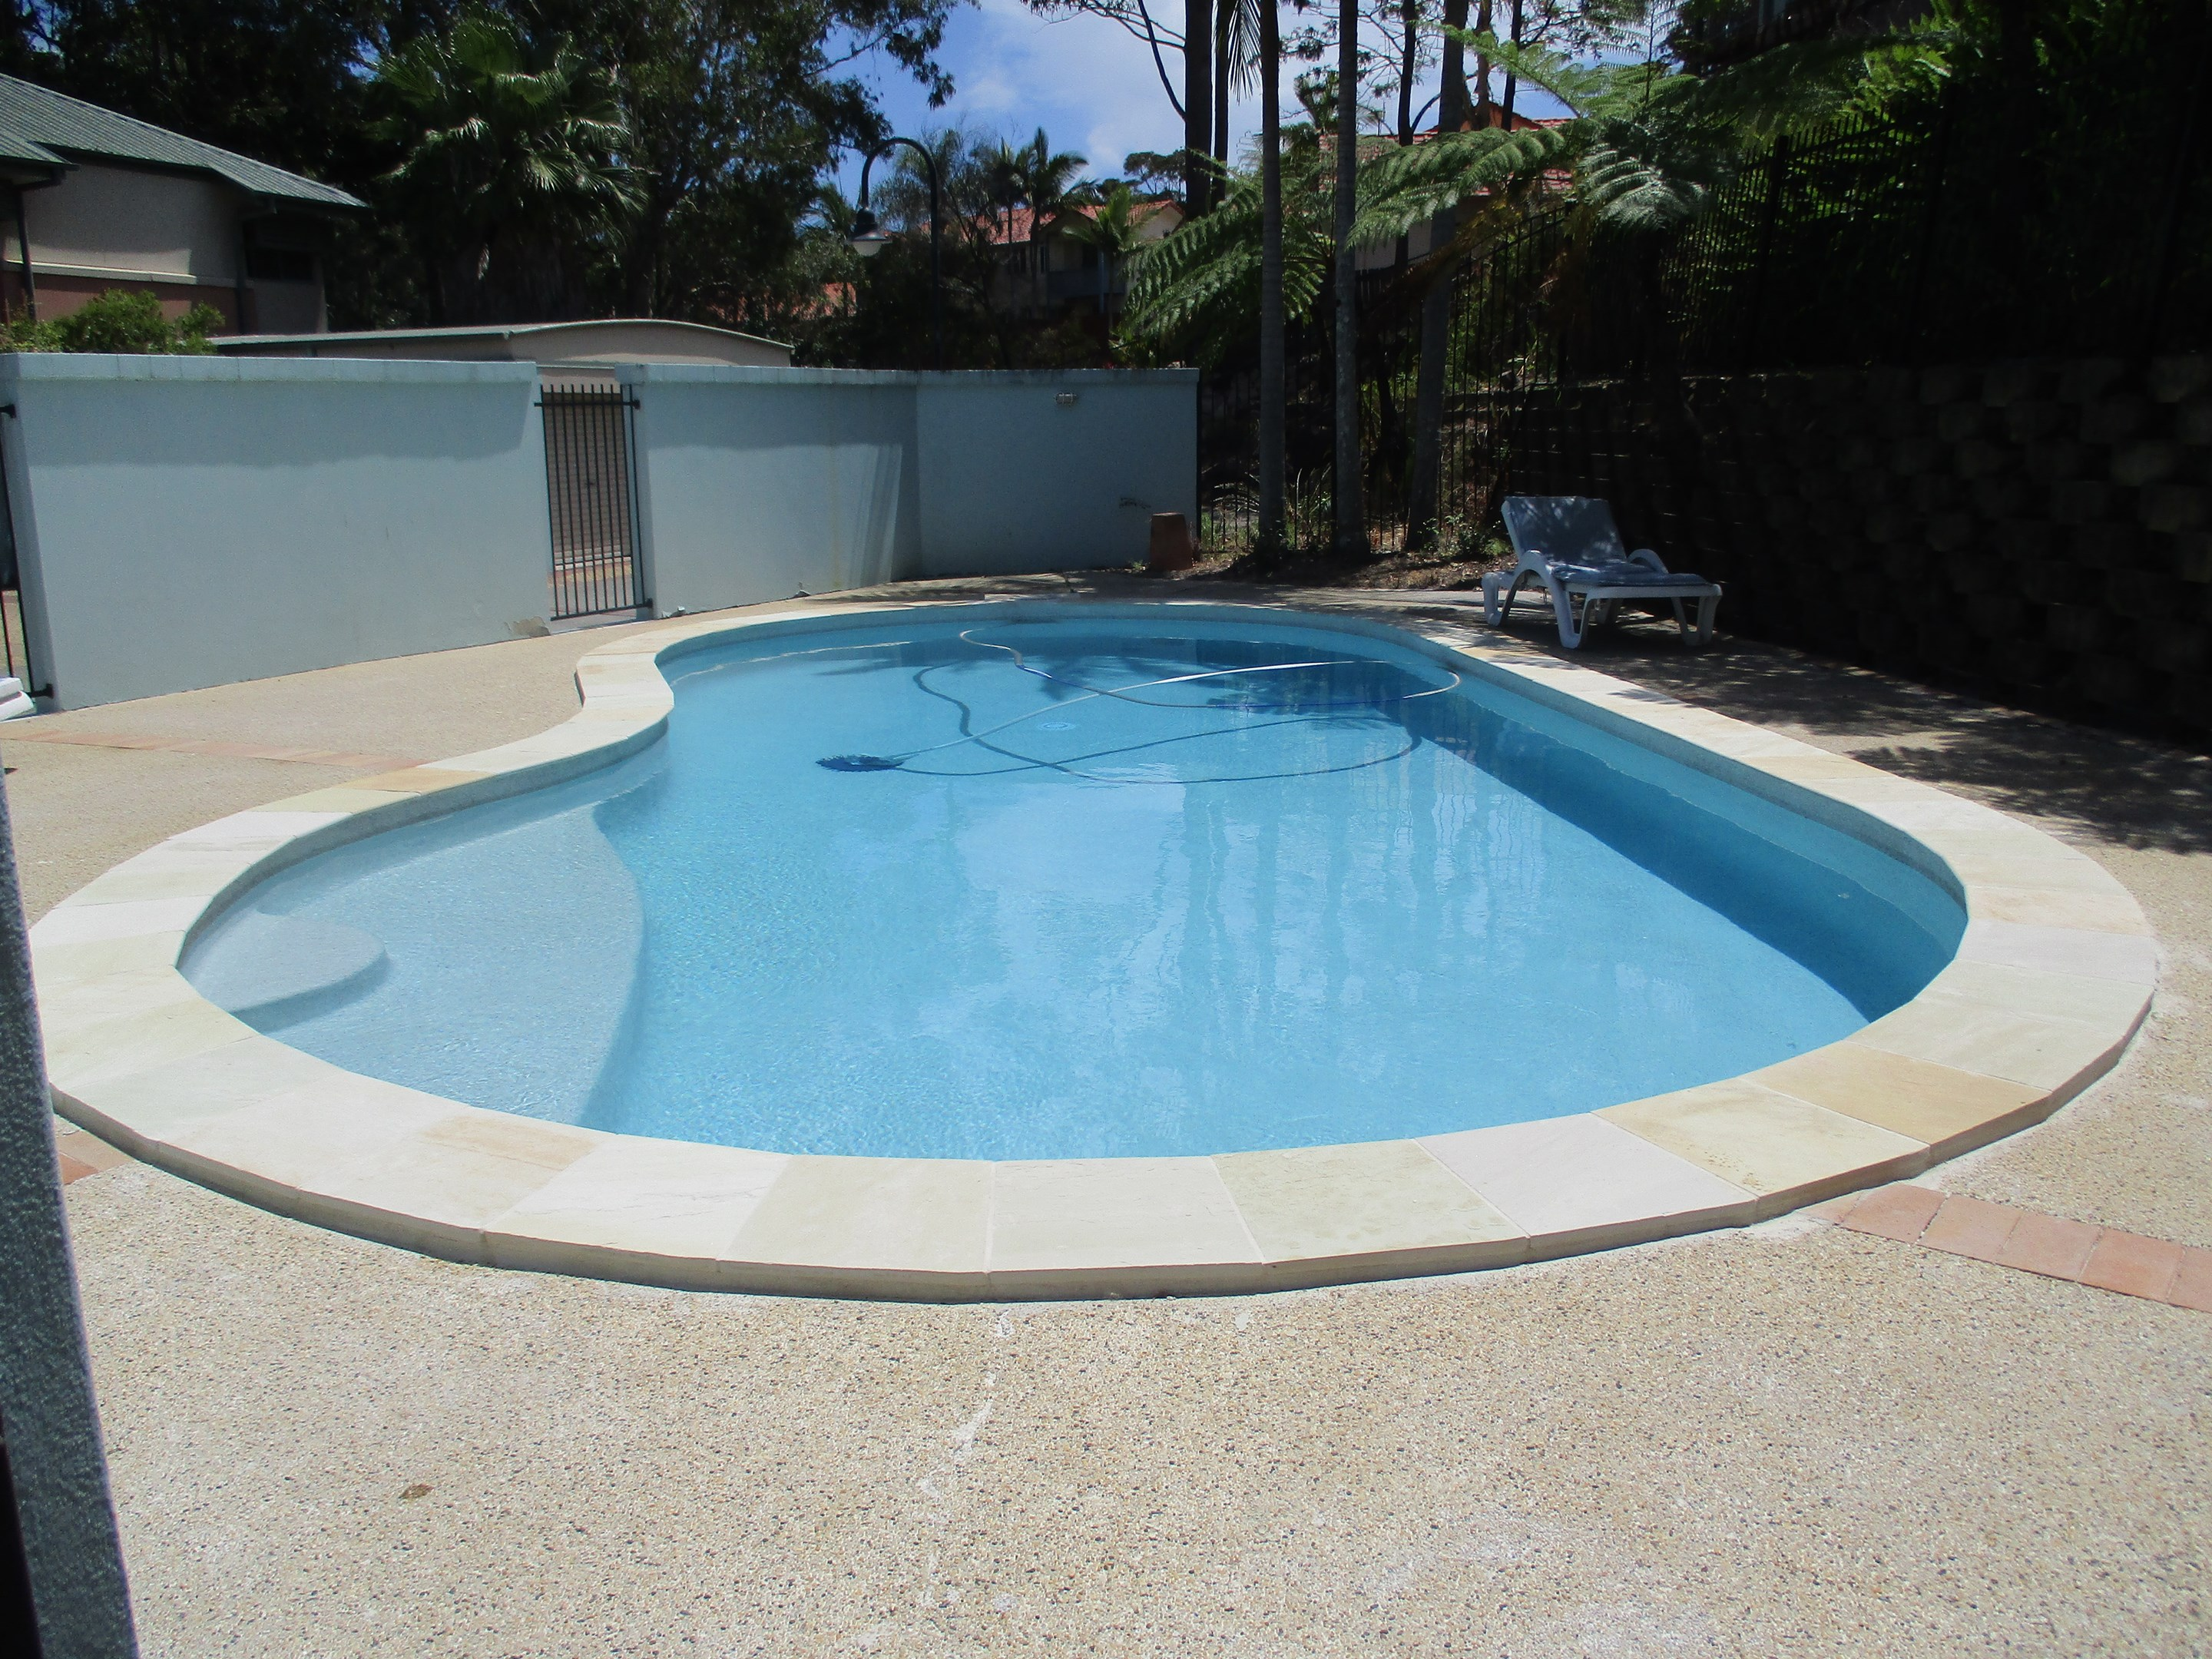 43 1 university drive robina qld 4226 townhouse for - University of queensland swimming pool ...